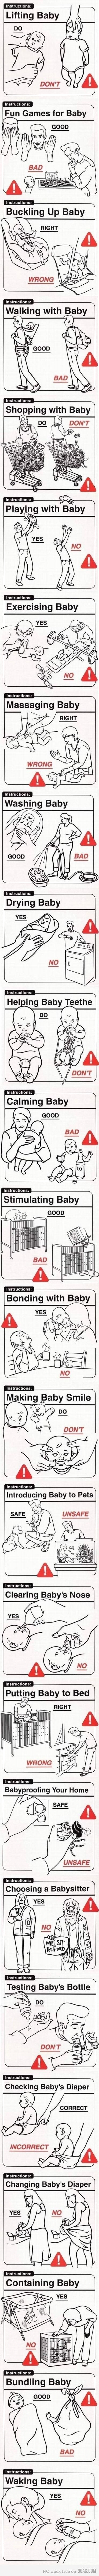 haha: Baby Advice, Baby Tips, Remember This, New Parents, Parents Tips, Baby Care, Funny Stuff, Funny Baby, So Funny